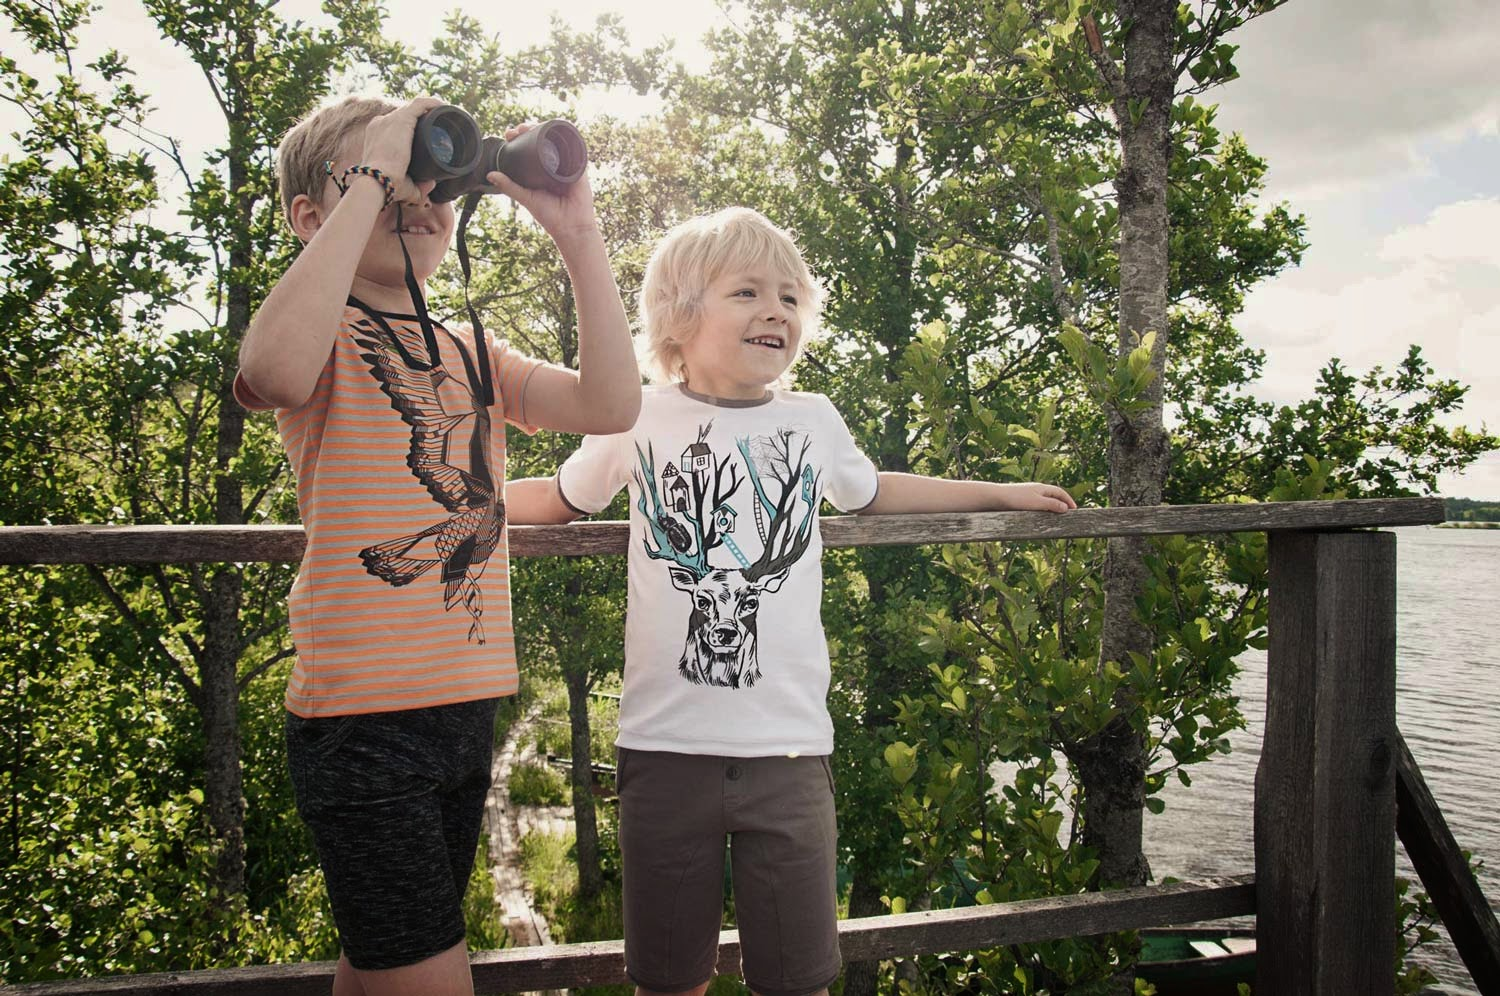 Brilliant artistic prints by Hebe for spring 2014 kidswear collection